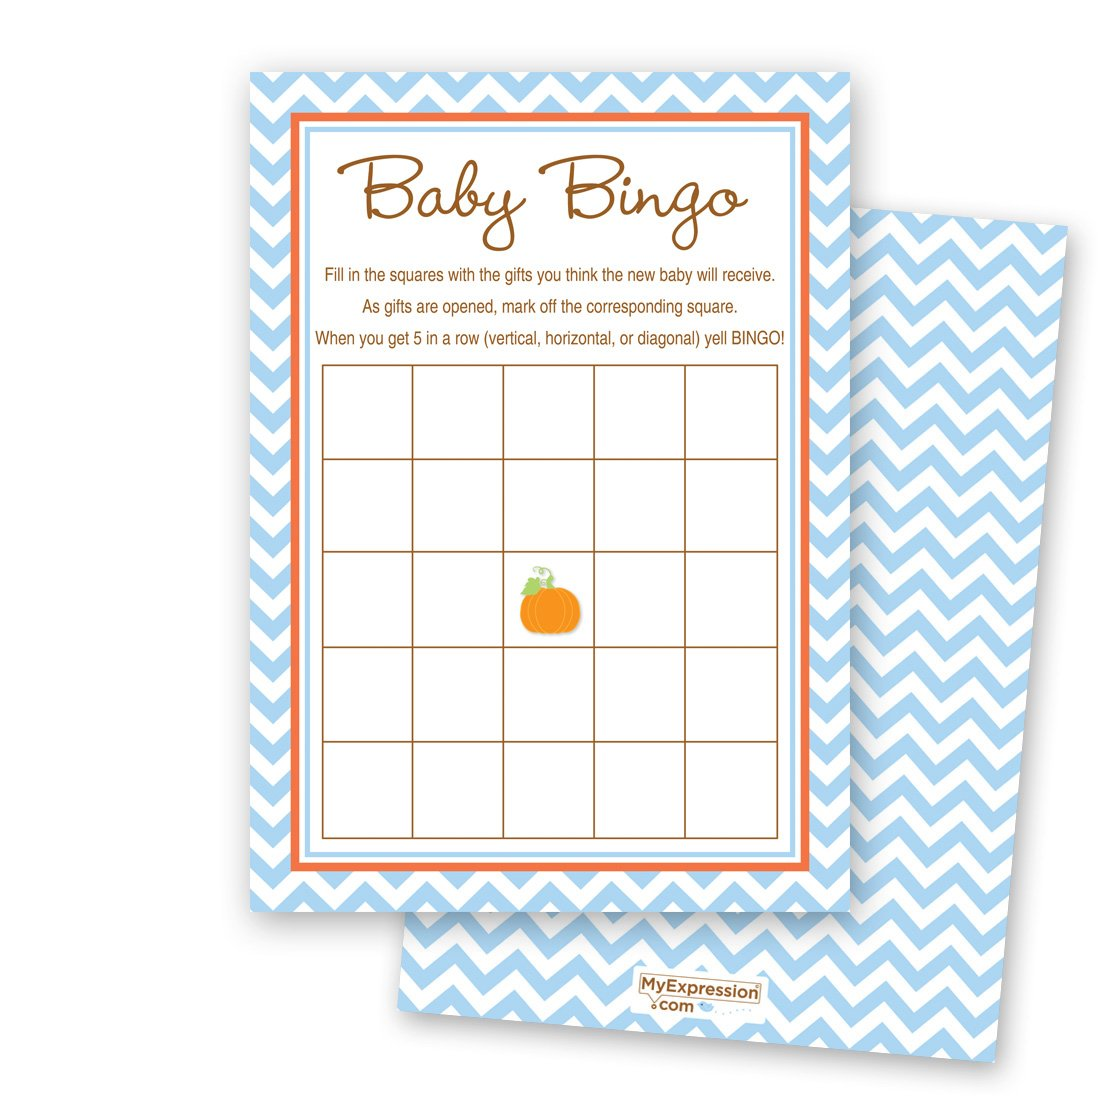 MyExpression.com 24 Cnt Pumpkin Blue Chevron Baby Shower Bingo Cards by MyExpression.com